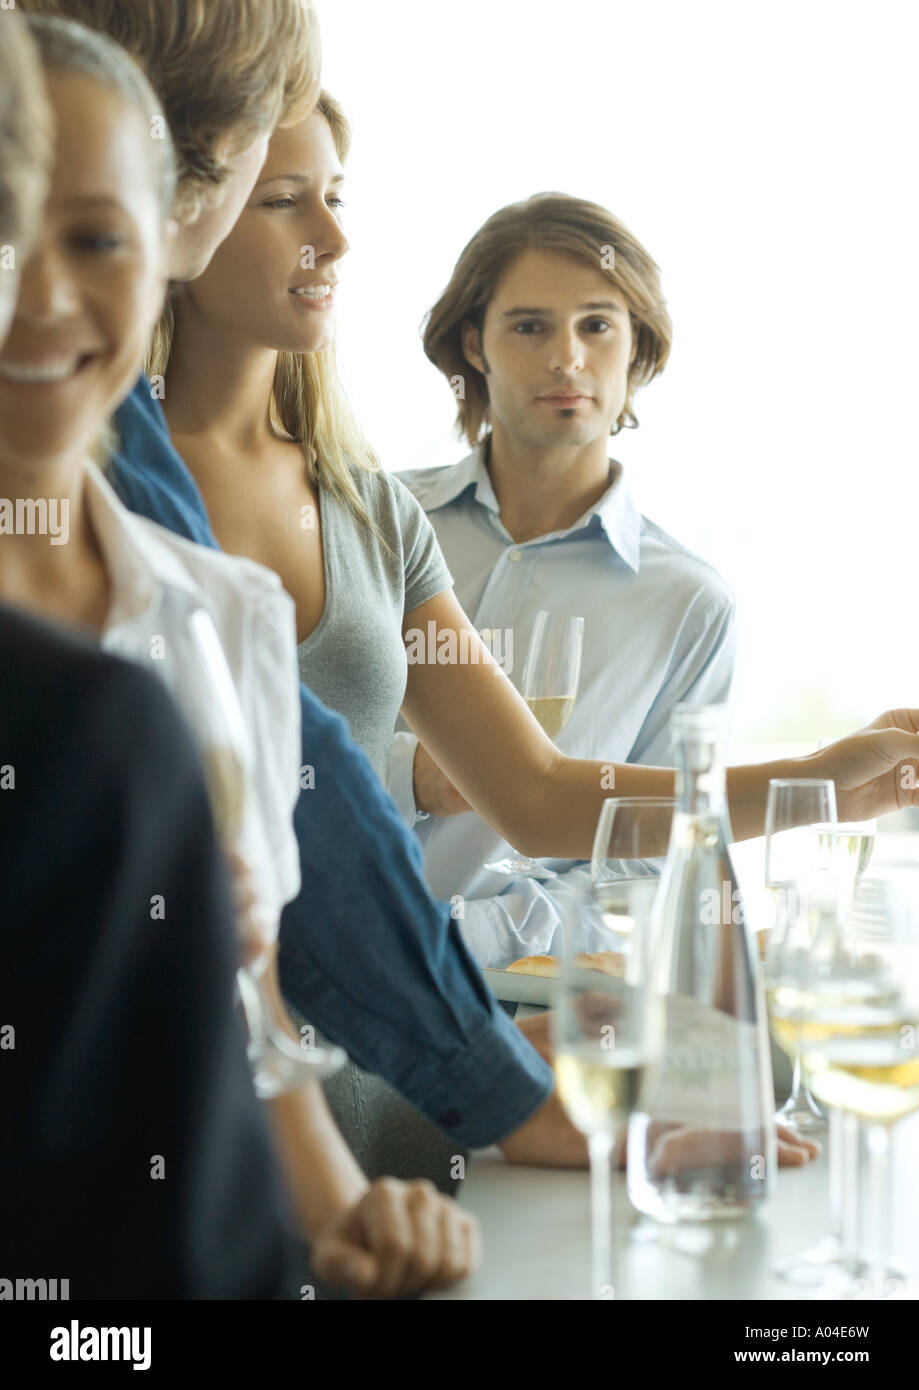 Group of young adults standing at bar, focus on man in background looking at camera - Stock Image